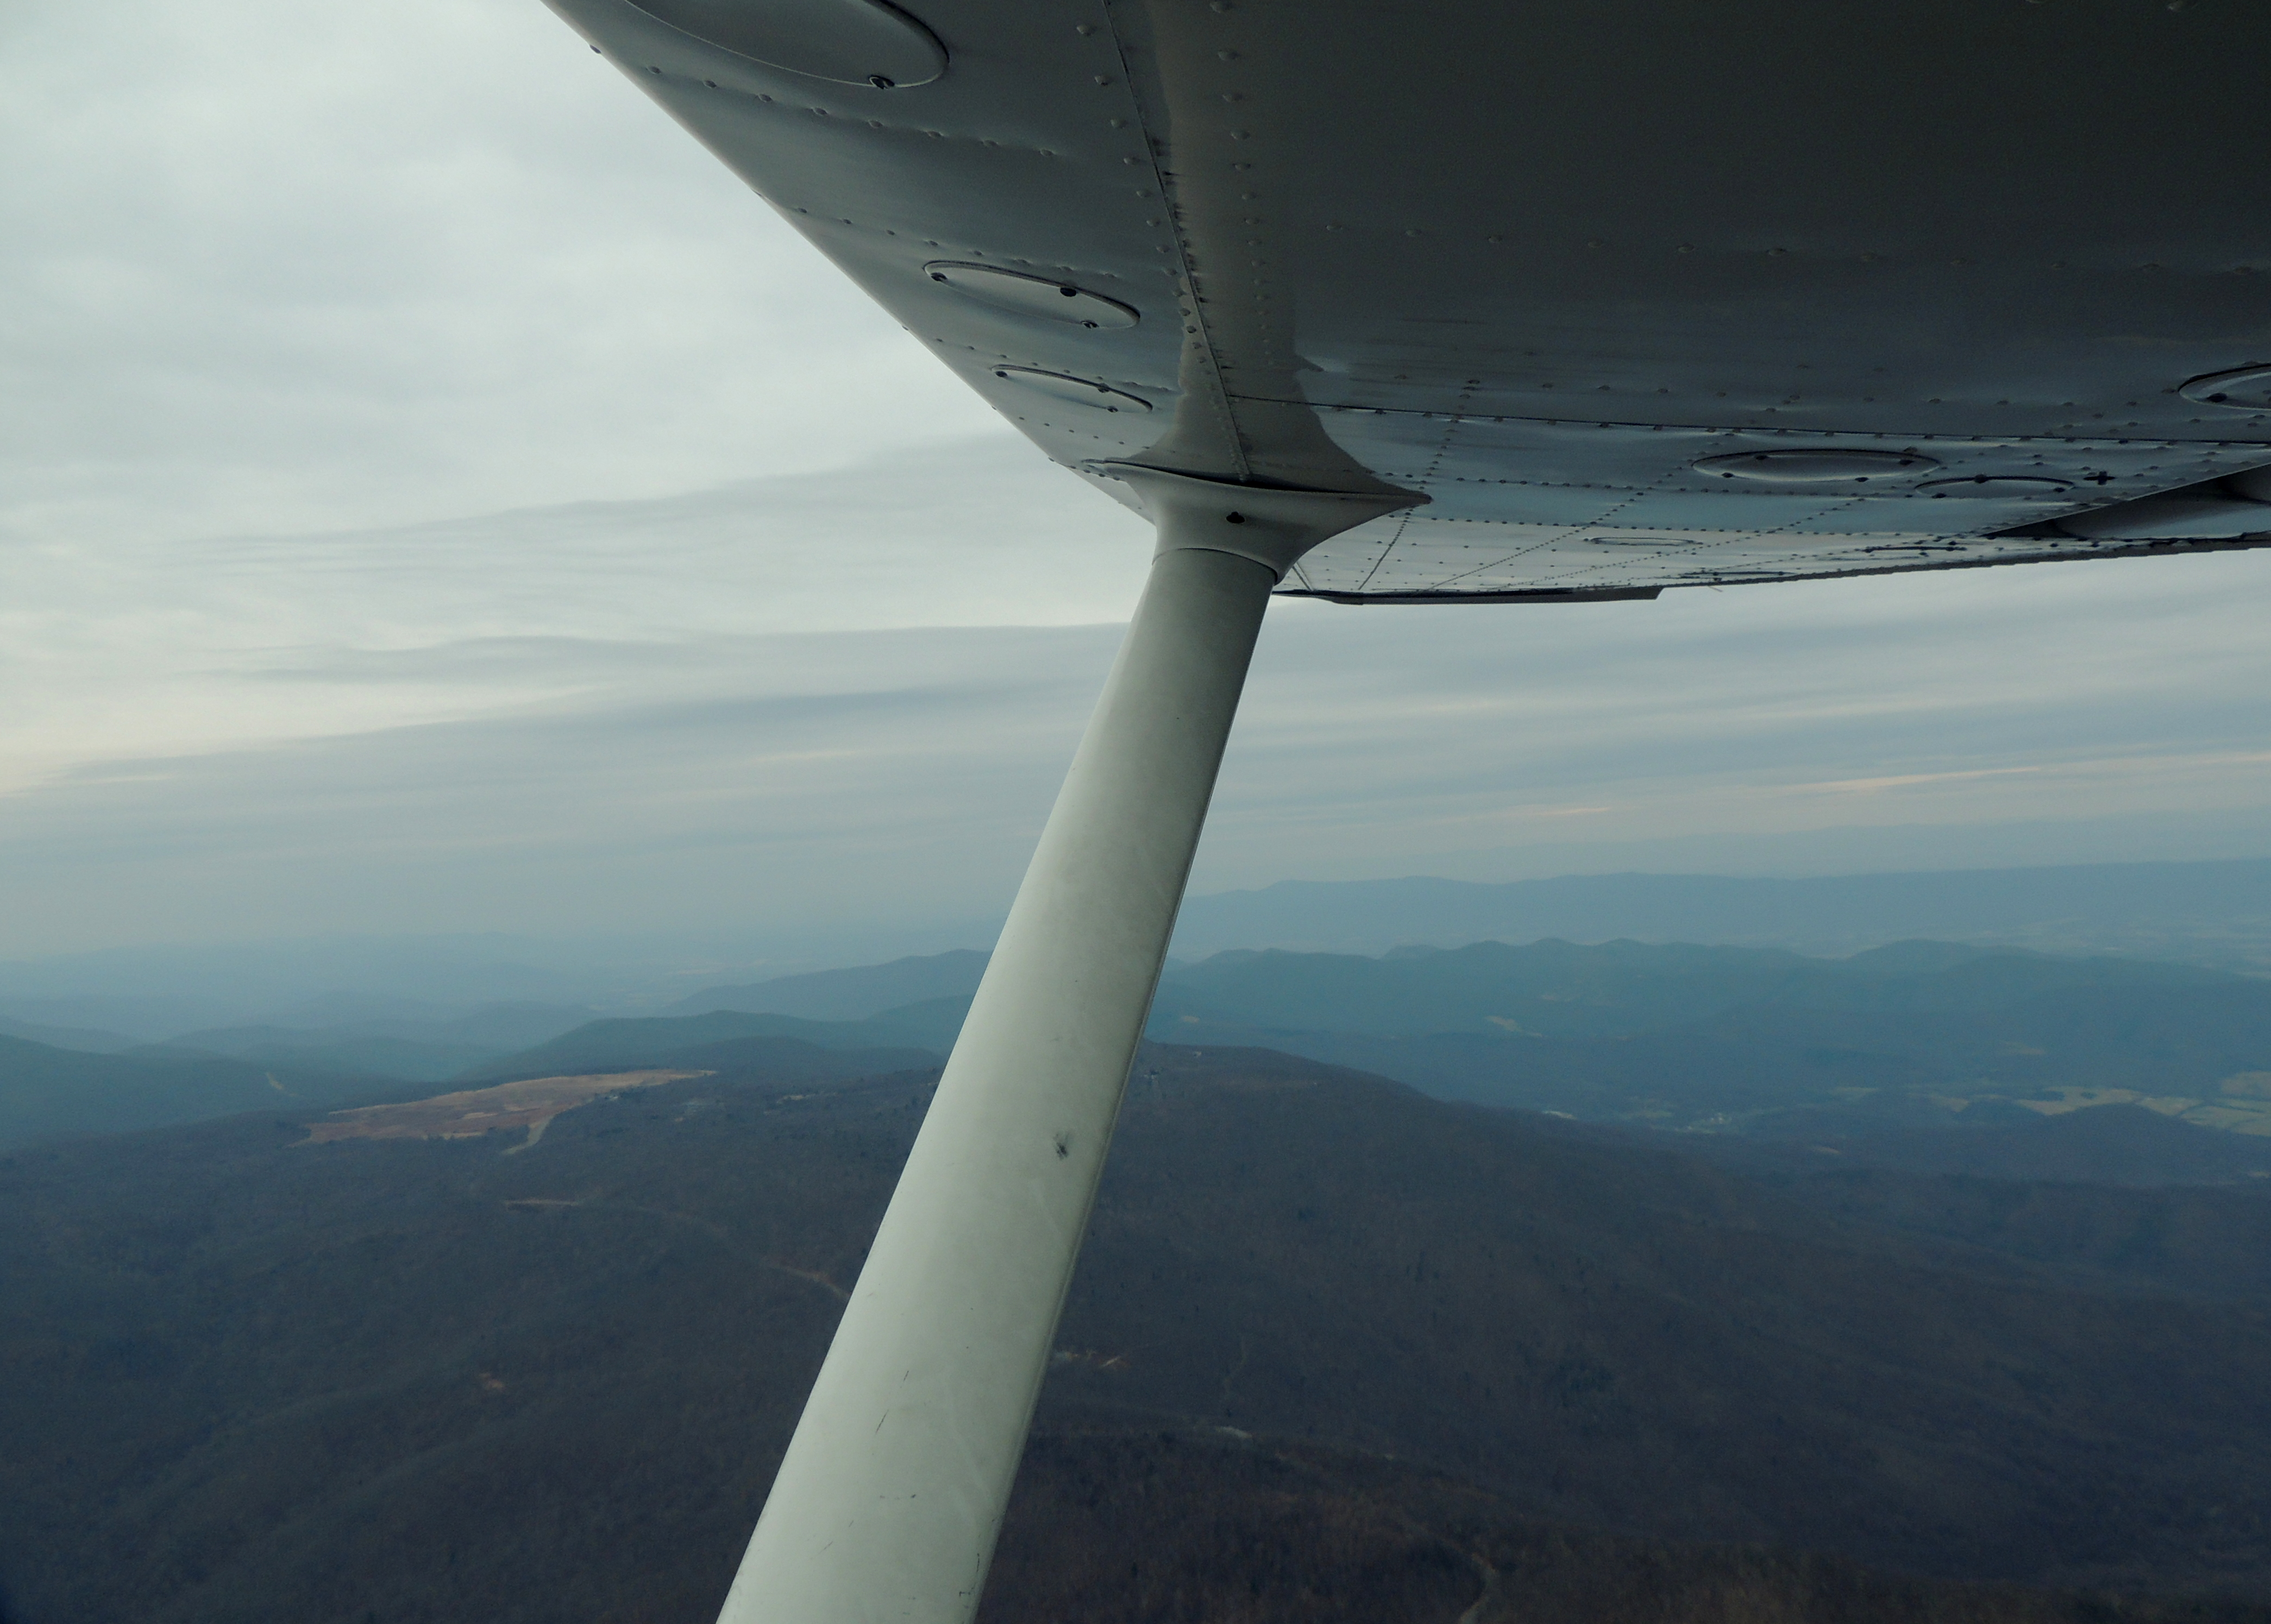 Flying over the Blue Ridge Mountains looking at Big Meadows